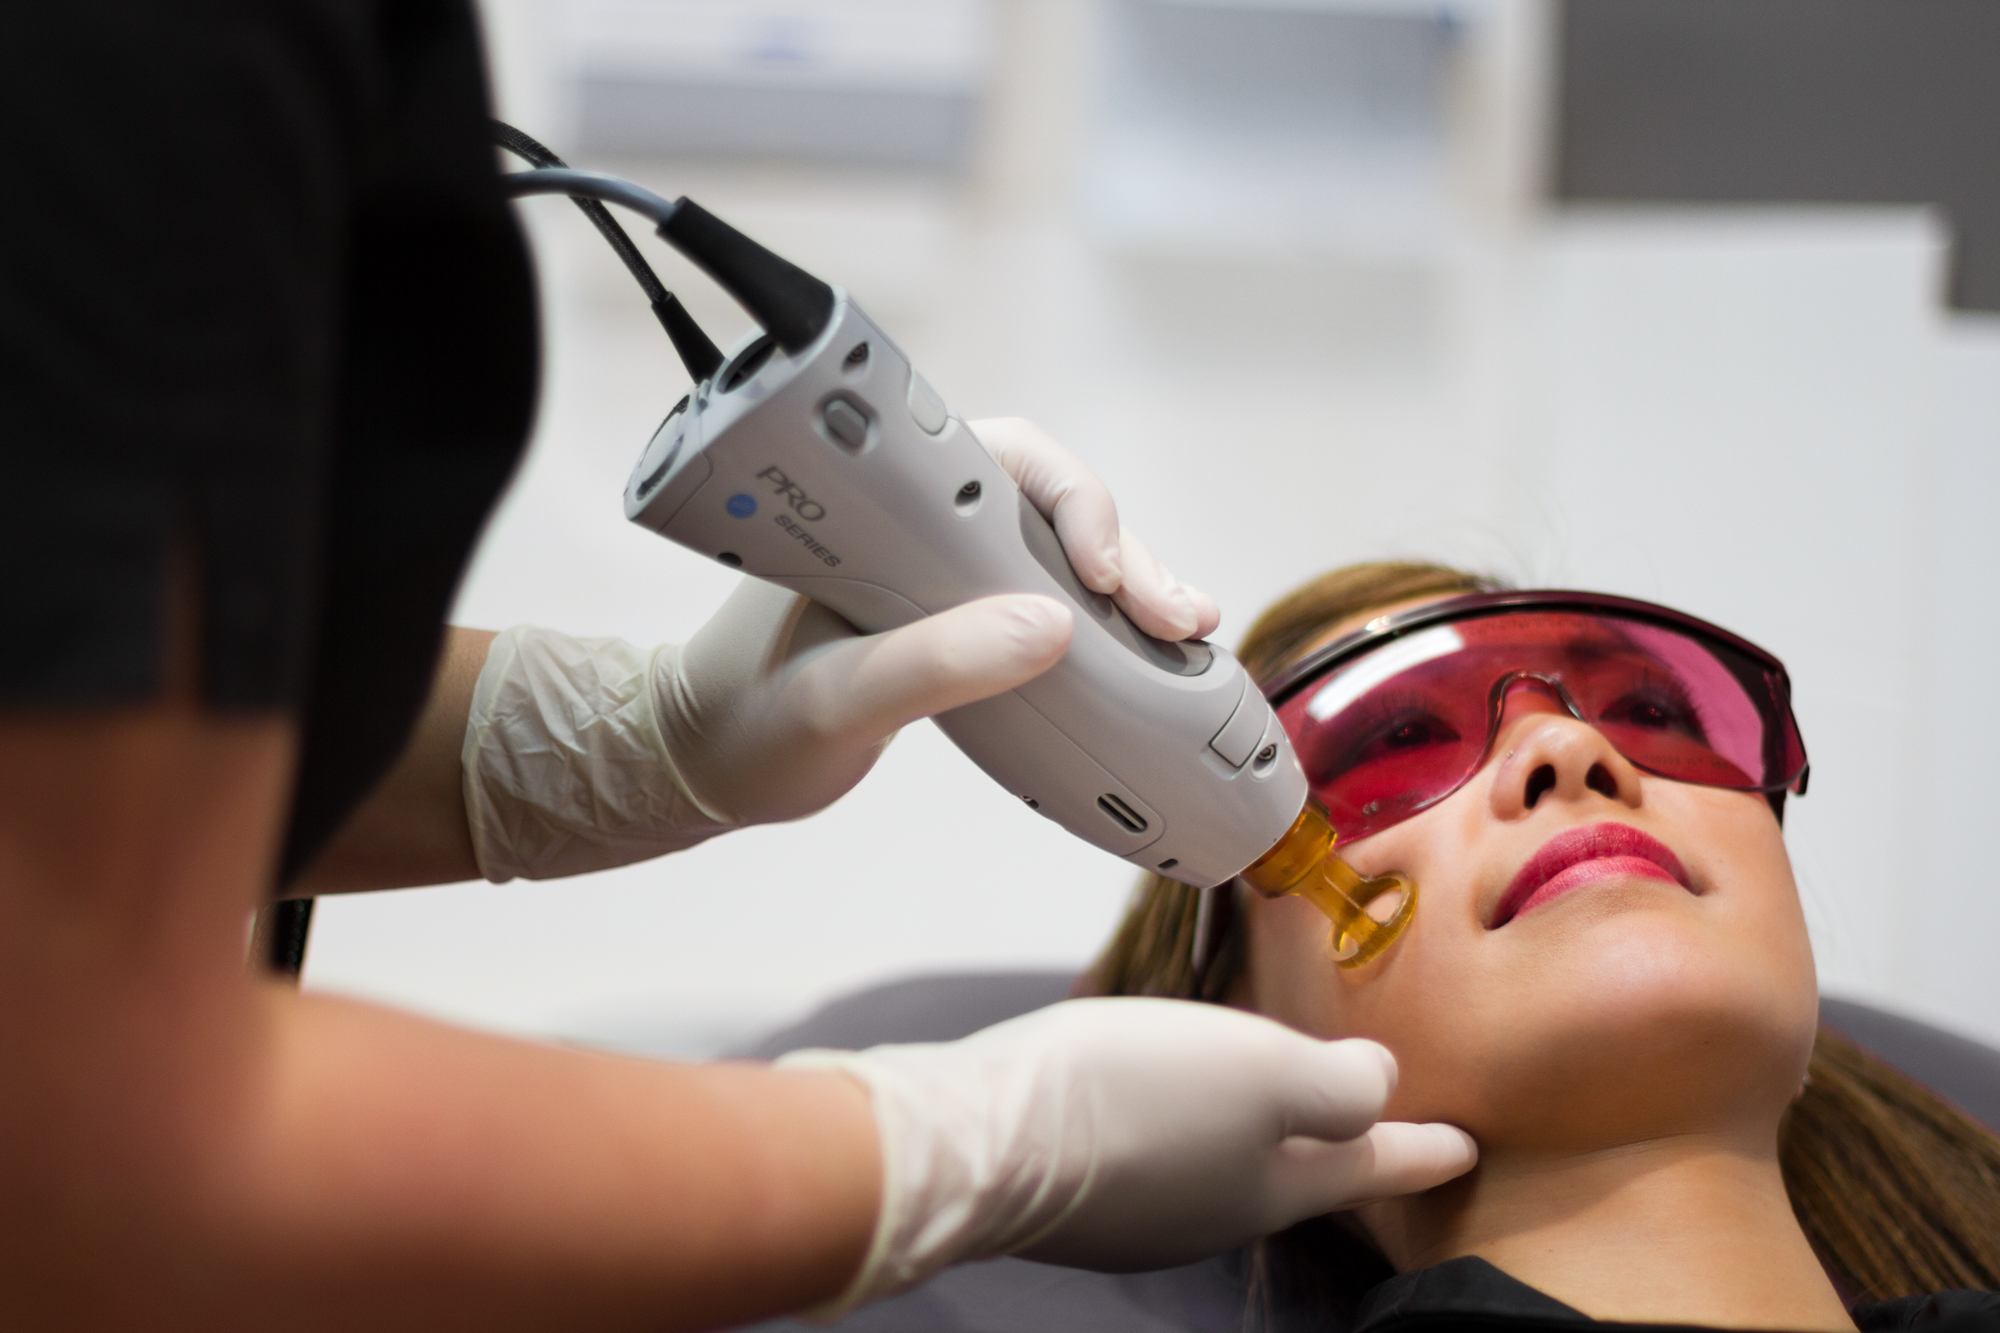 Laser hair removal the notable side effects proactol health and laser hair removal the notable side effects proactol health and fitness blog solutioingenieria Choice Image